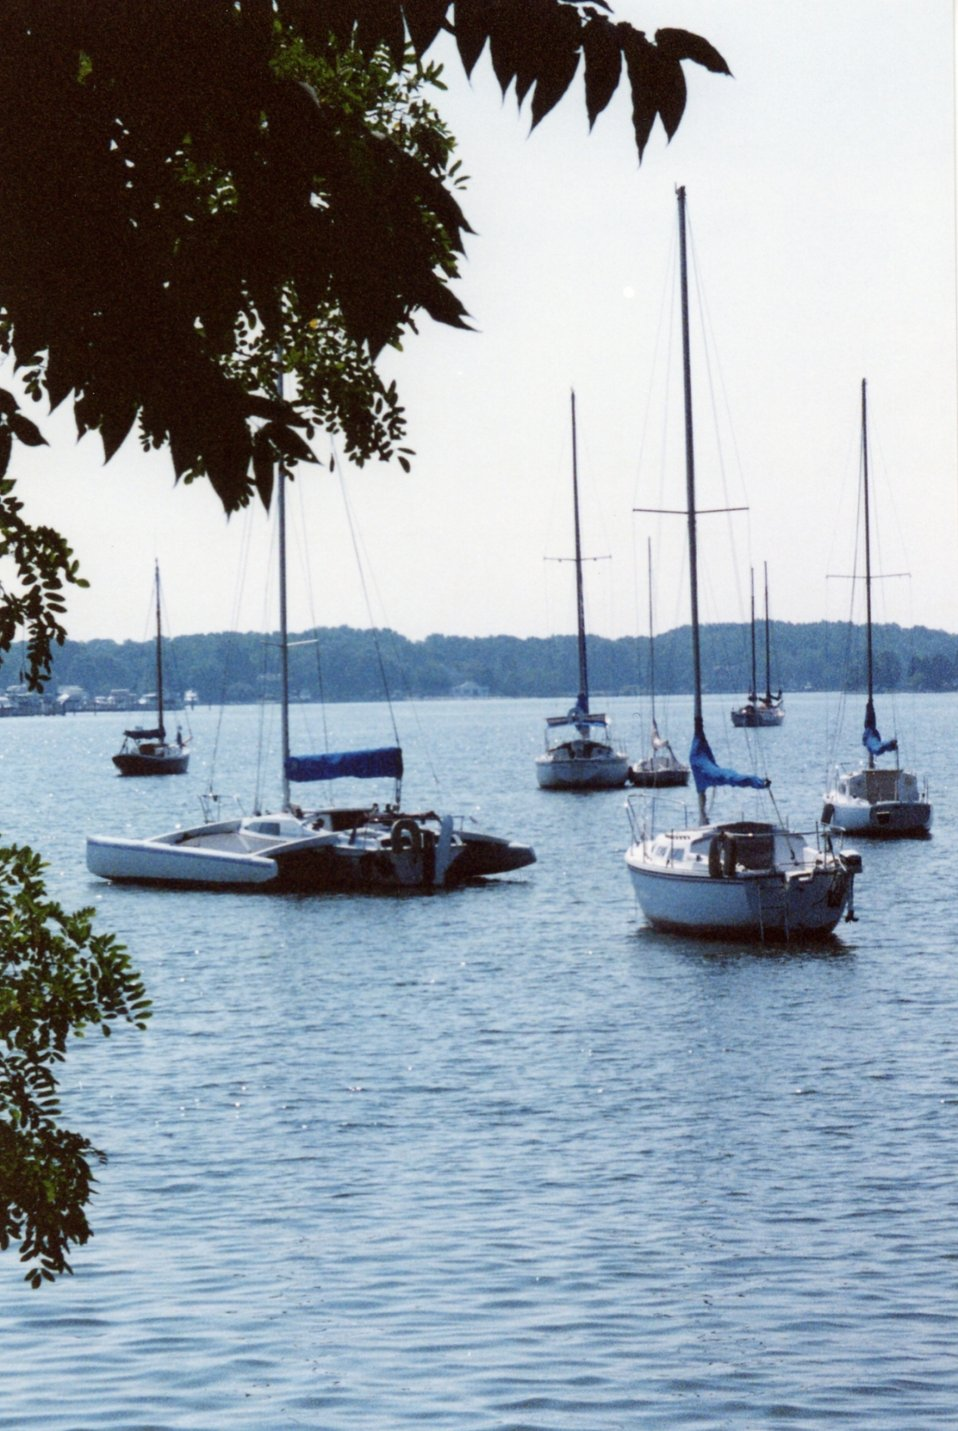 Sailboats moored in the West River.